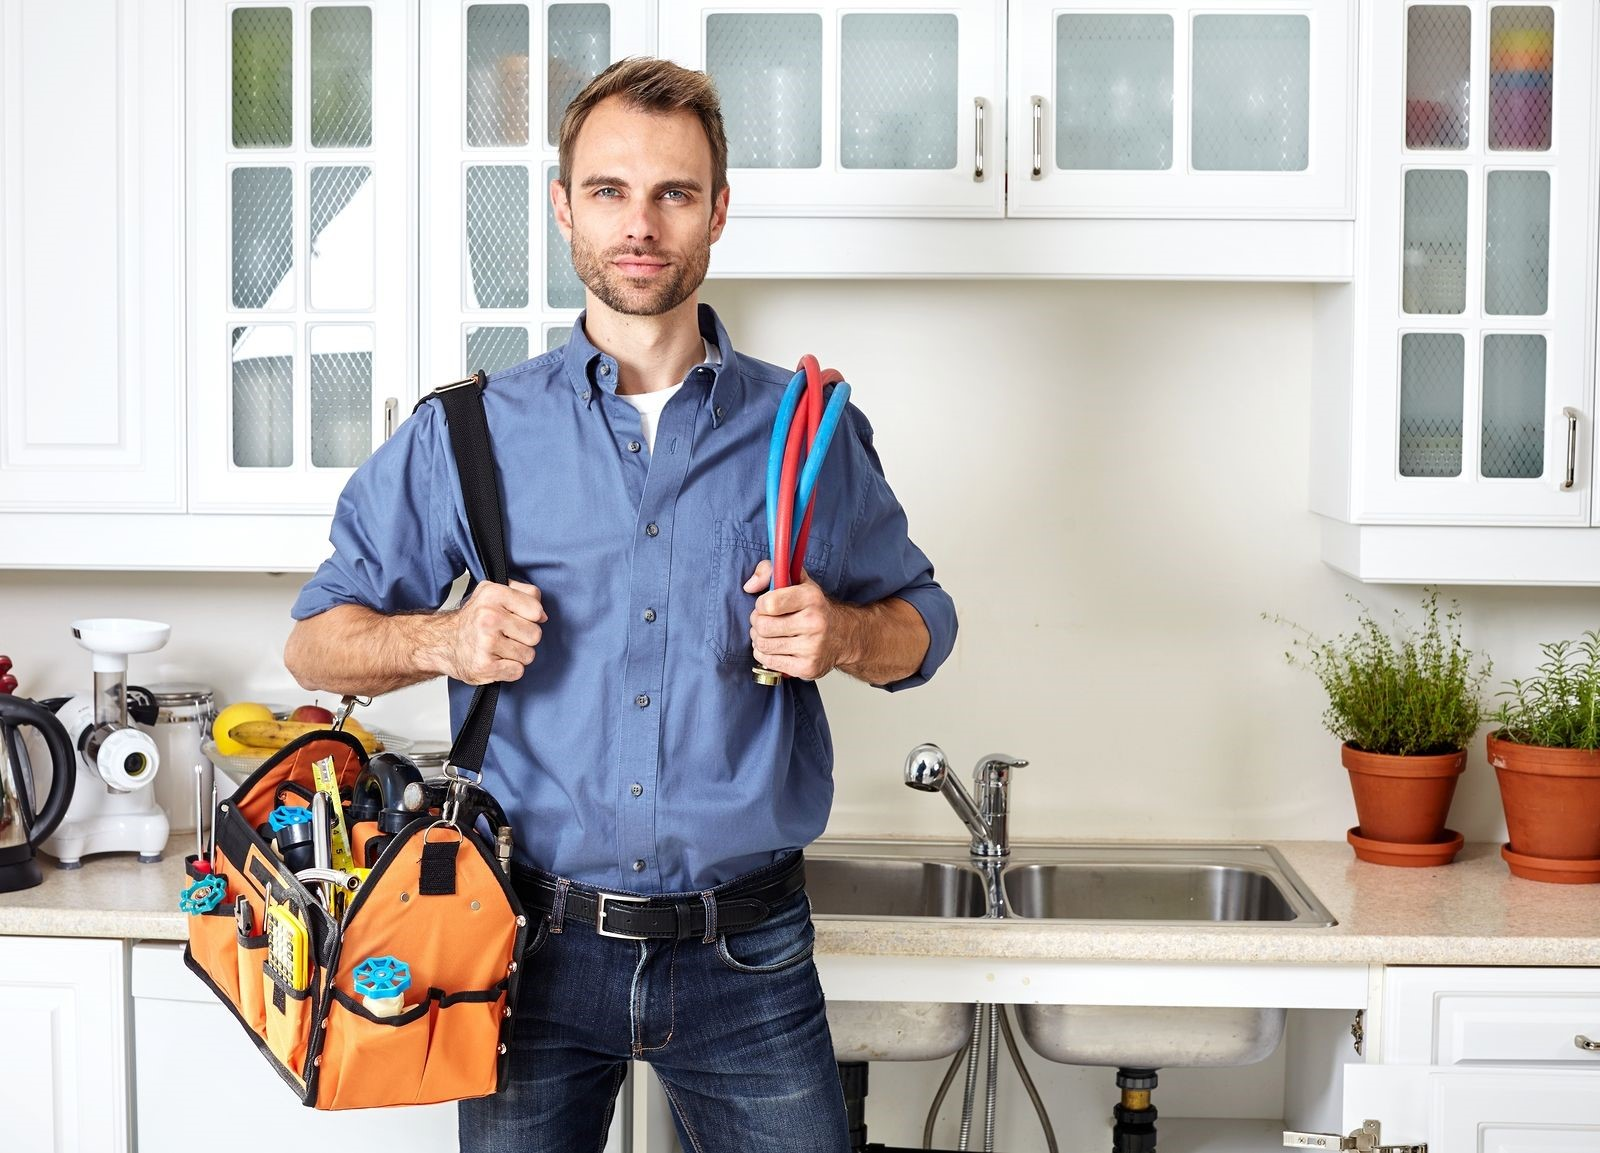 How Plumbers Help Keep Your Water Supply Pipes and Drains Flowing